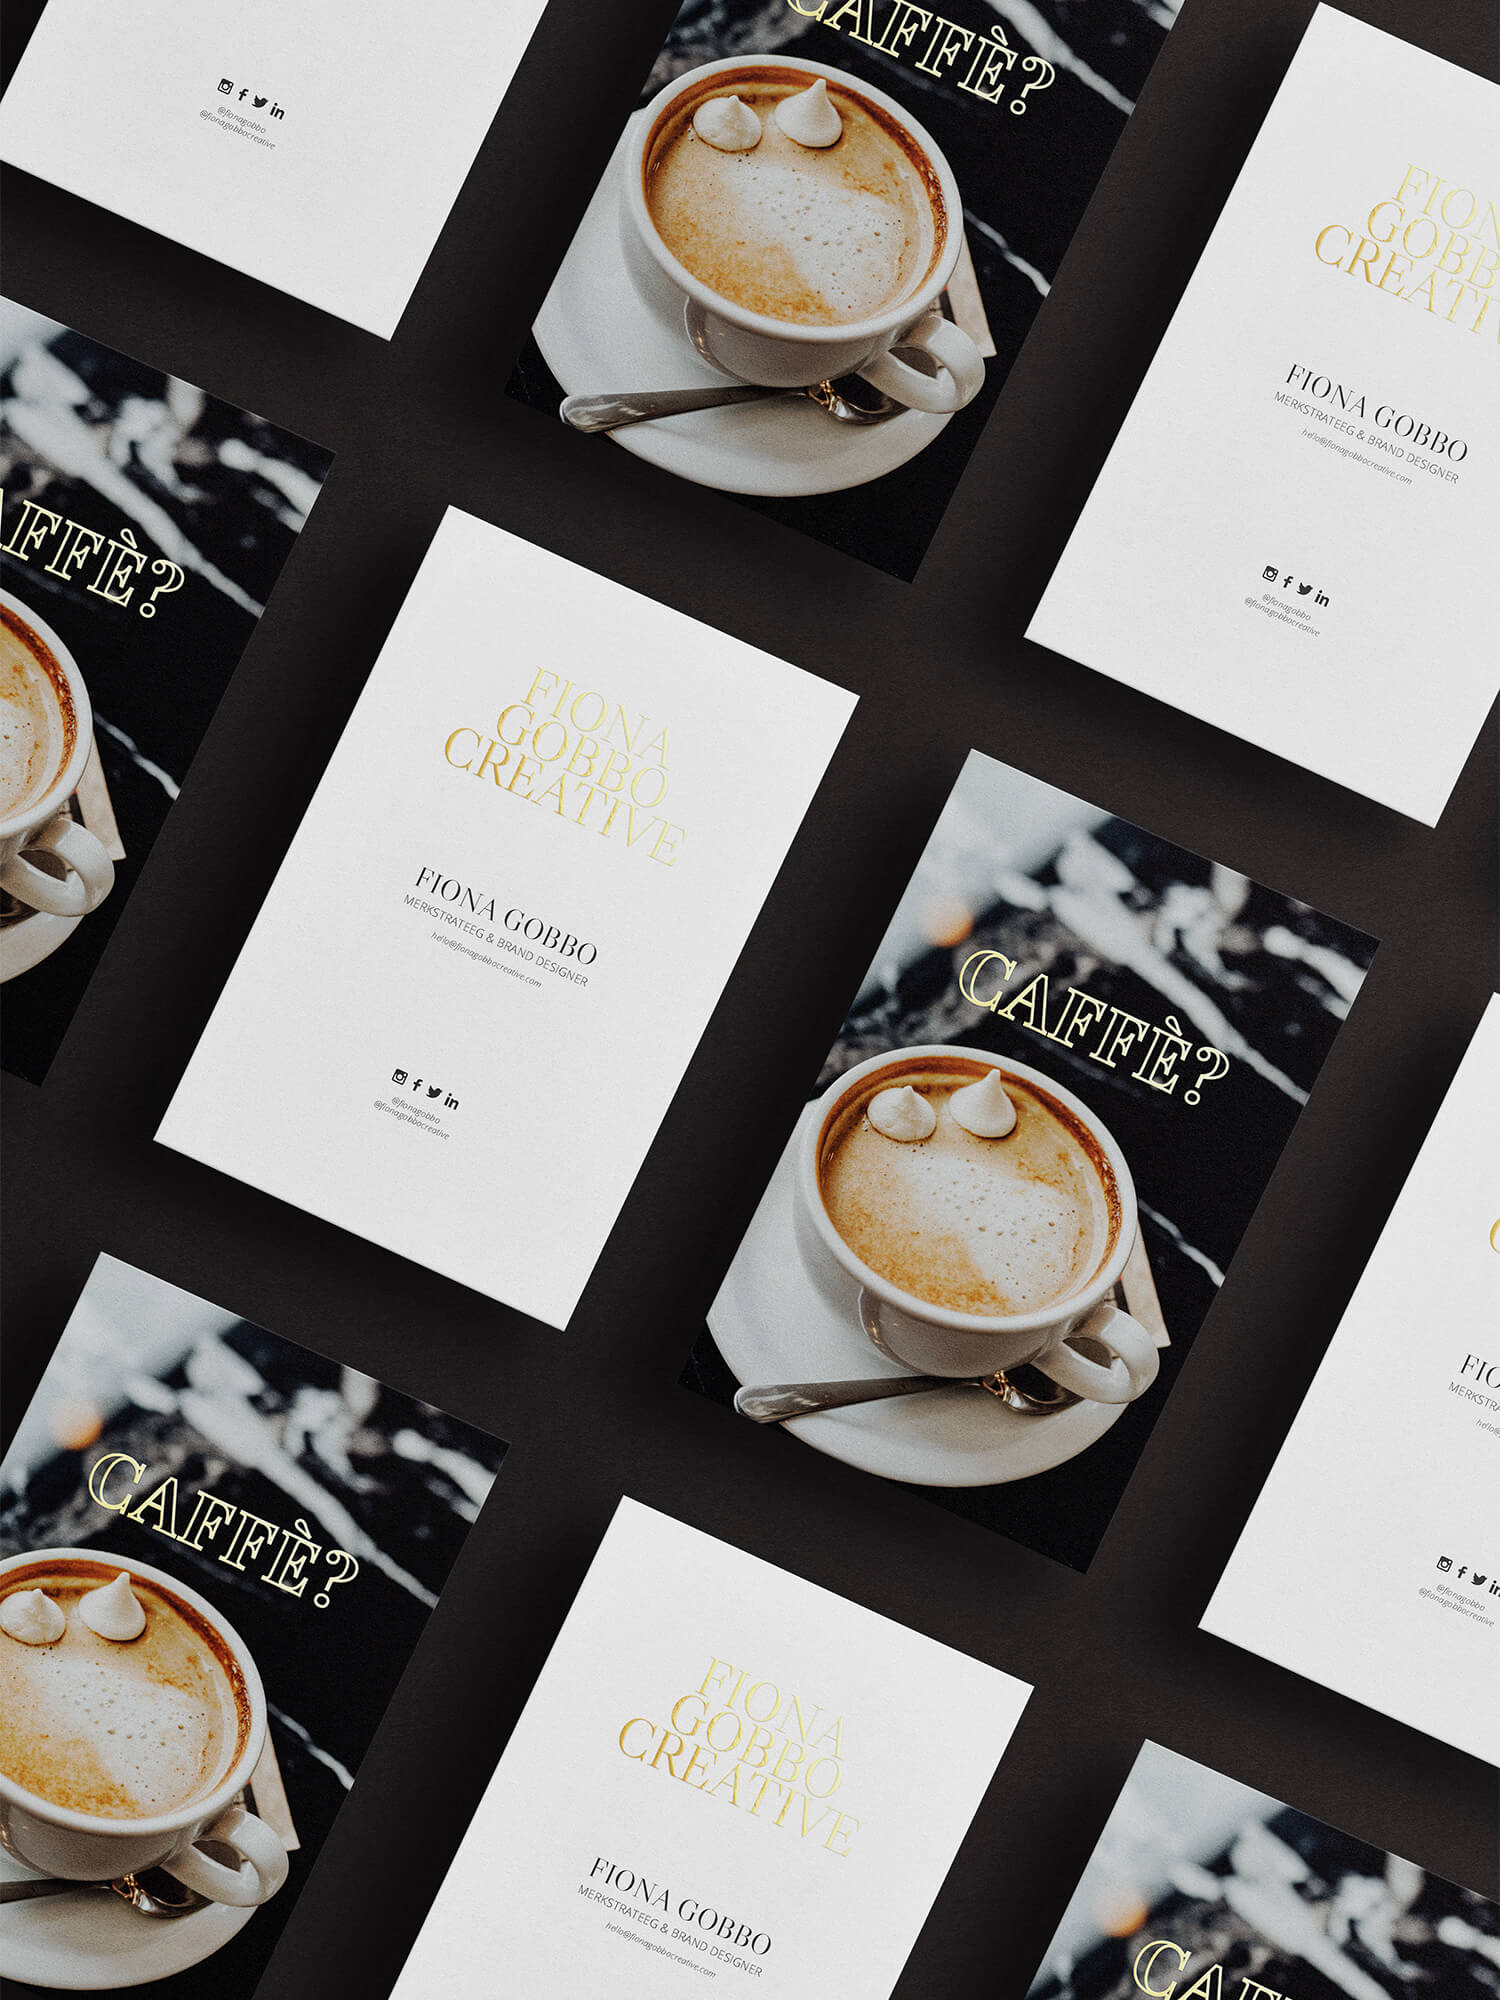 Luxury Brand Identity | Fiona Gobbo Creative | Collateral materials to (re)build your luxury brand